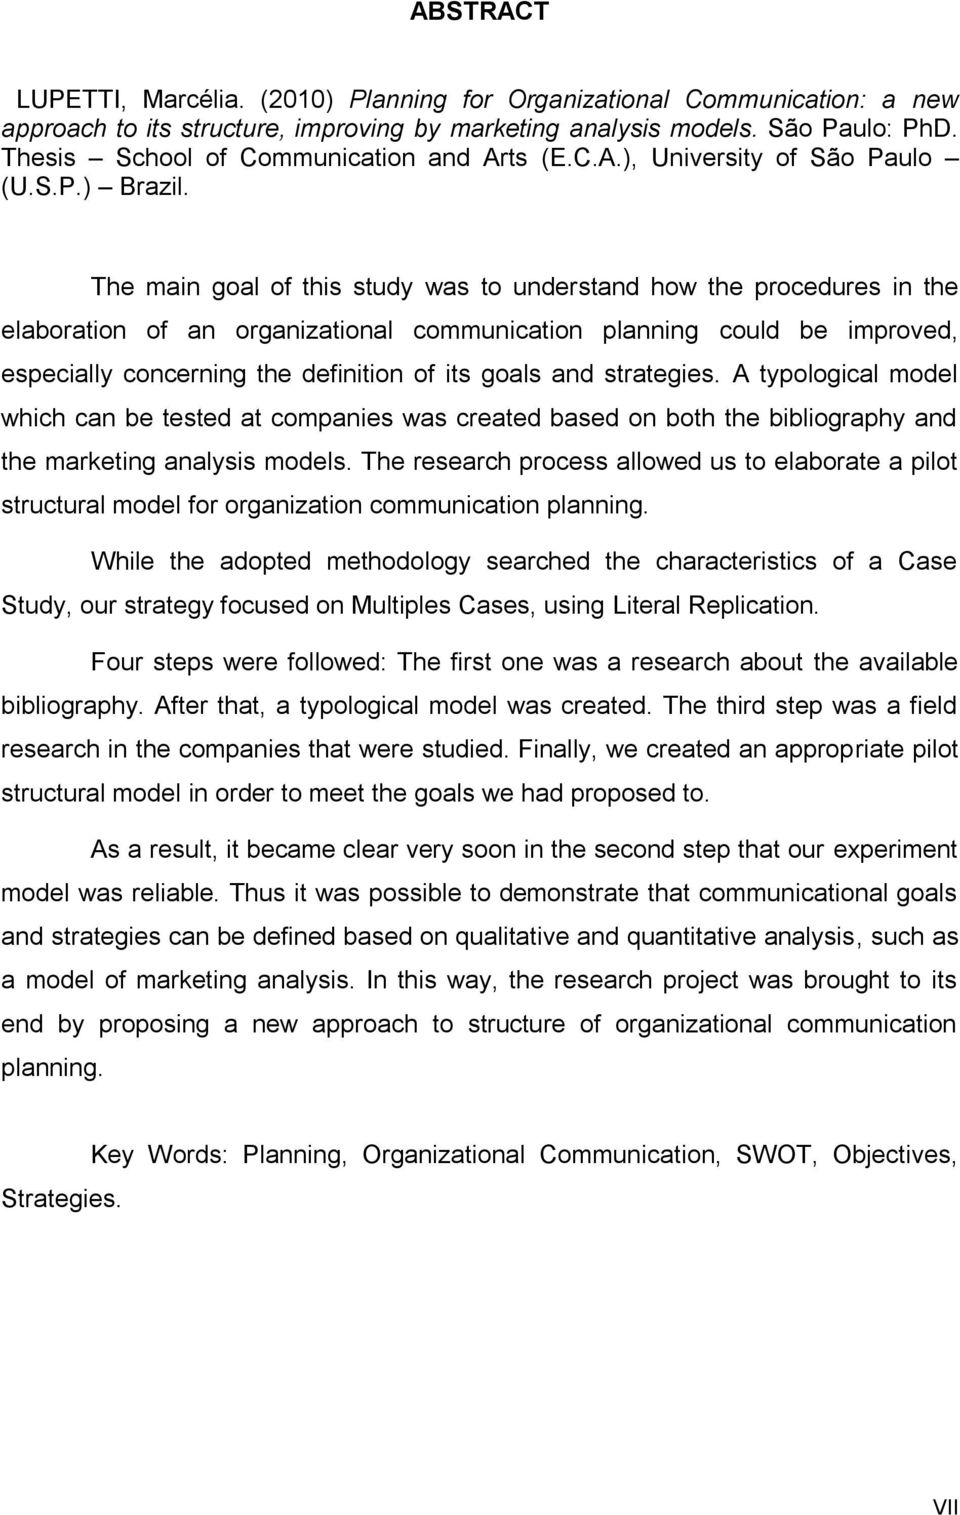 The main goal of this study was to understand how the procedures in the elaboration of an organizational communication planning could be improved, especially concerning the definition of its goals